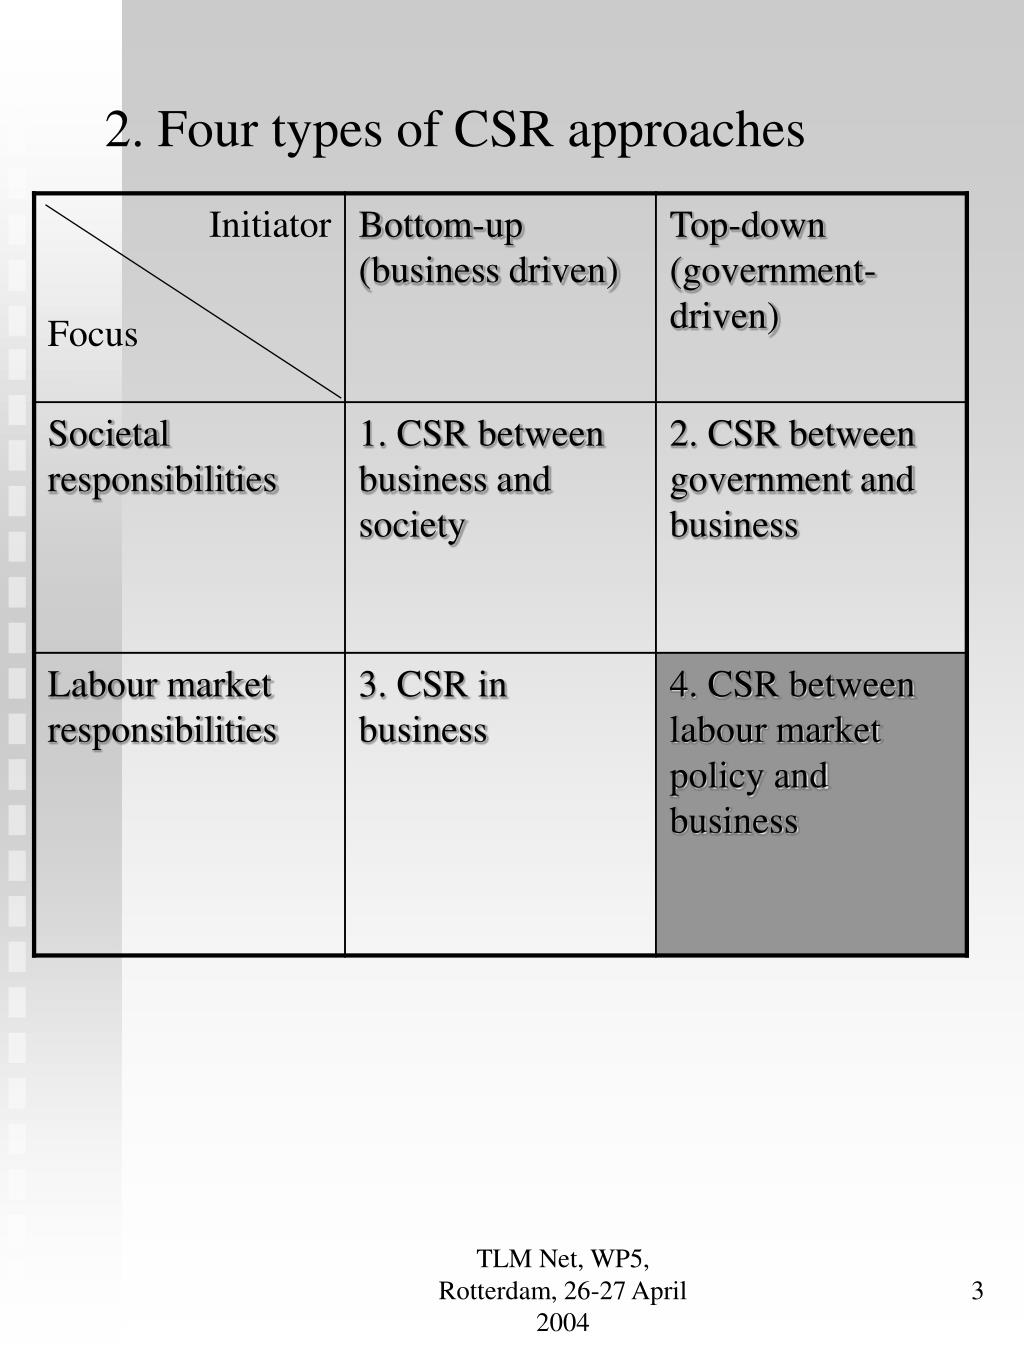 2. Four types of CSR approaches